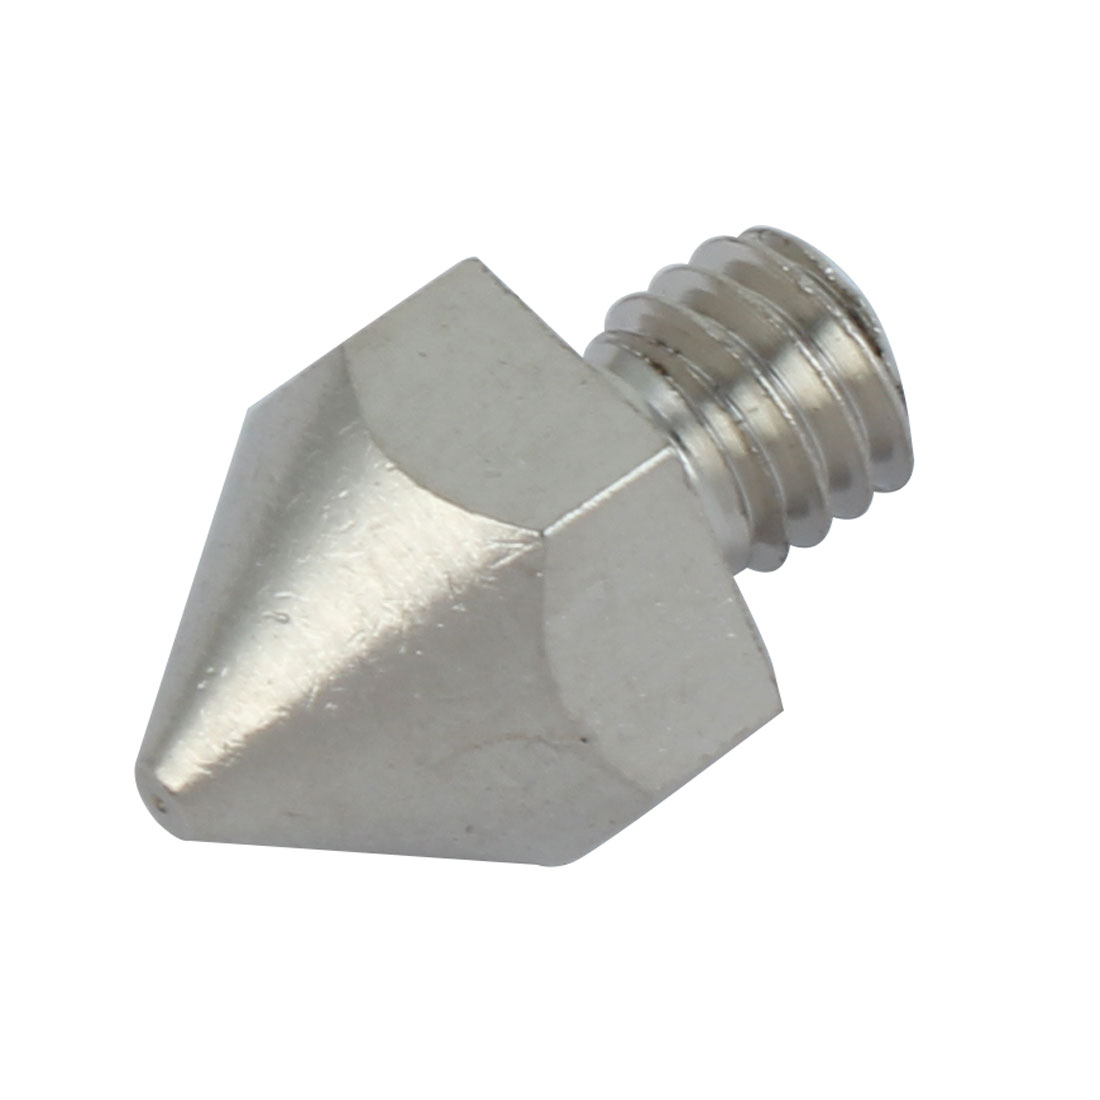 0.2mm Stainless Steel Nozzle Fitting for 1.75mm Filament 3D Printer